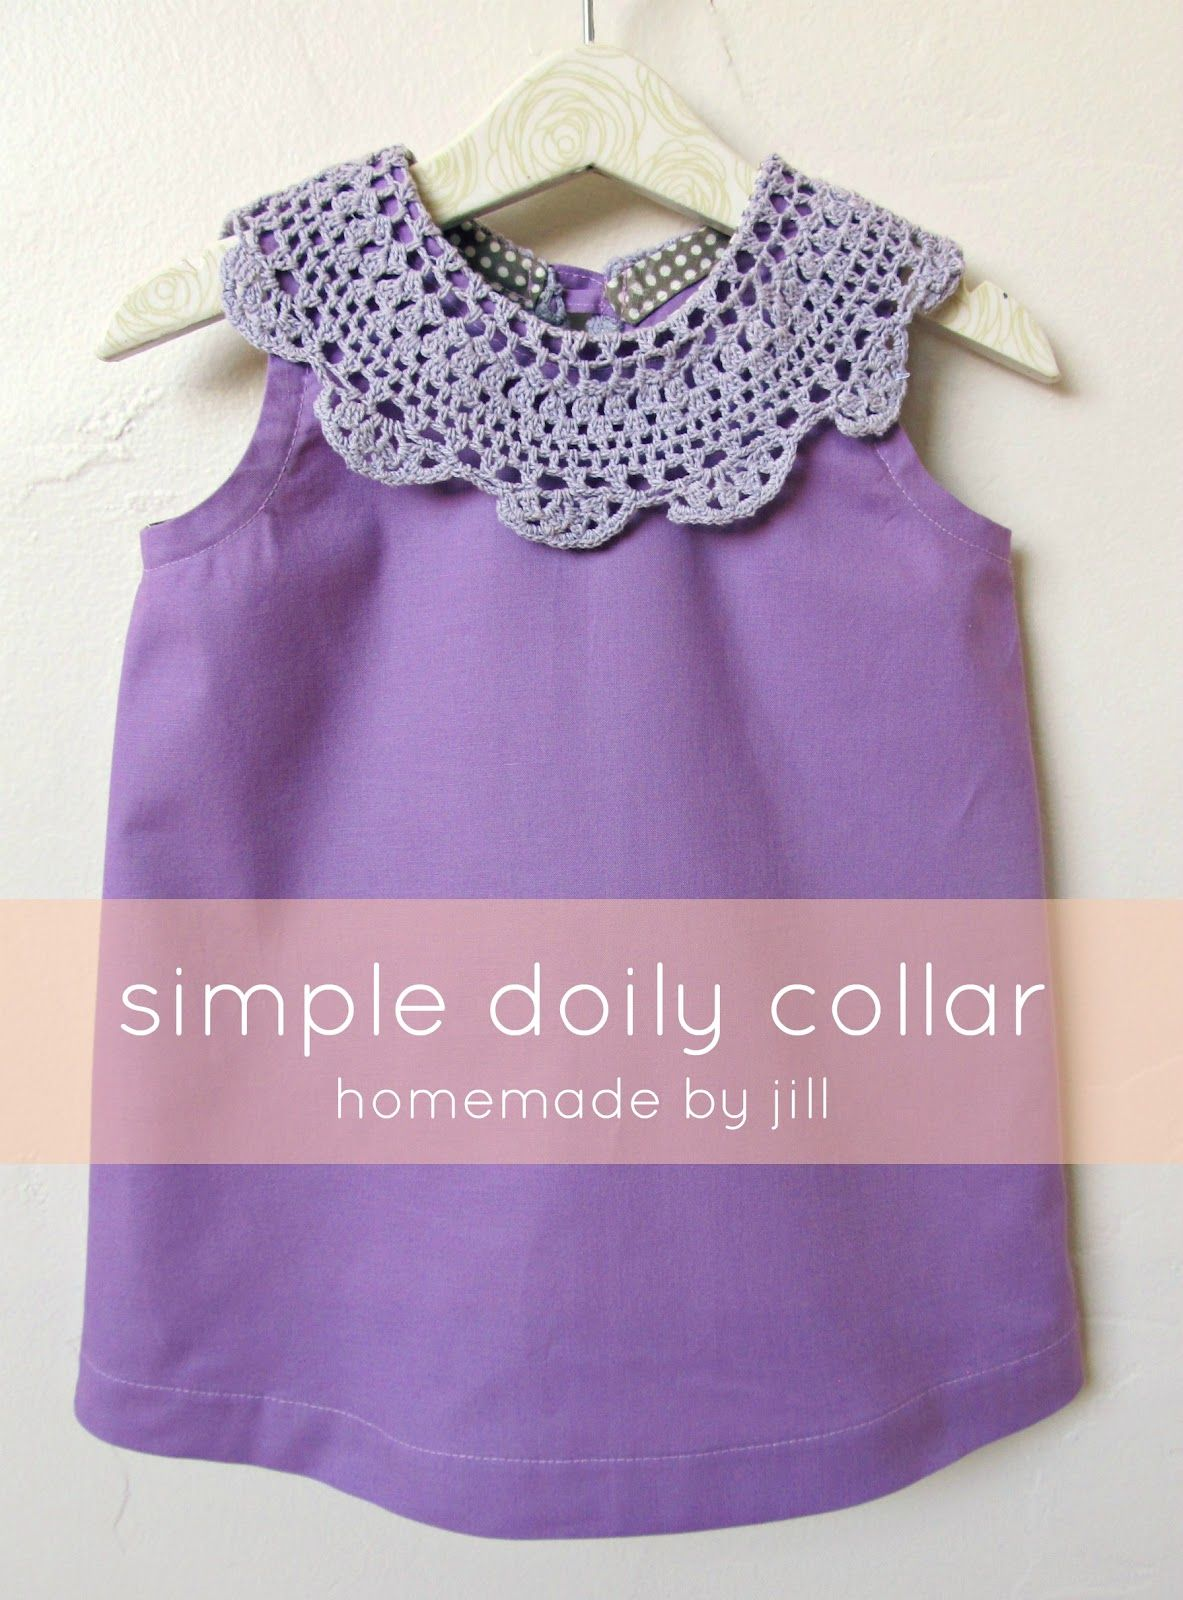 Tutorial for hacking a free pattern - Doily collar - Project Run and Play: Guest Judge--Jill from Homemade by Jill